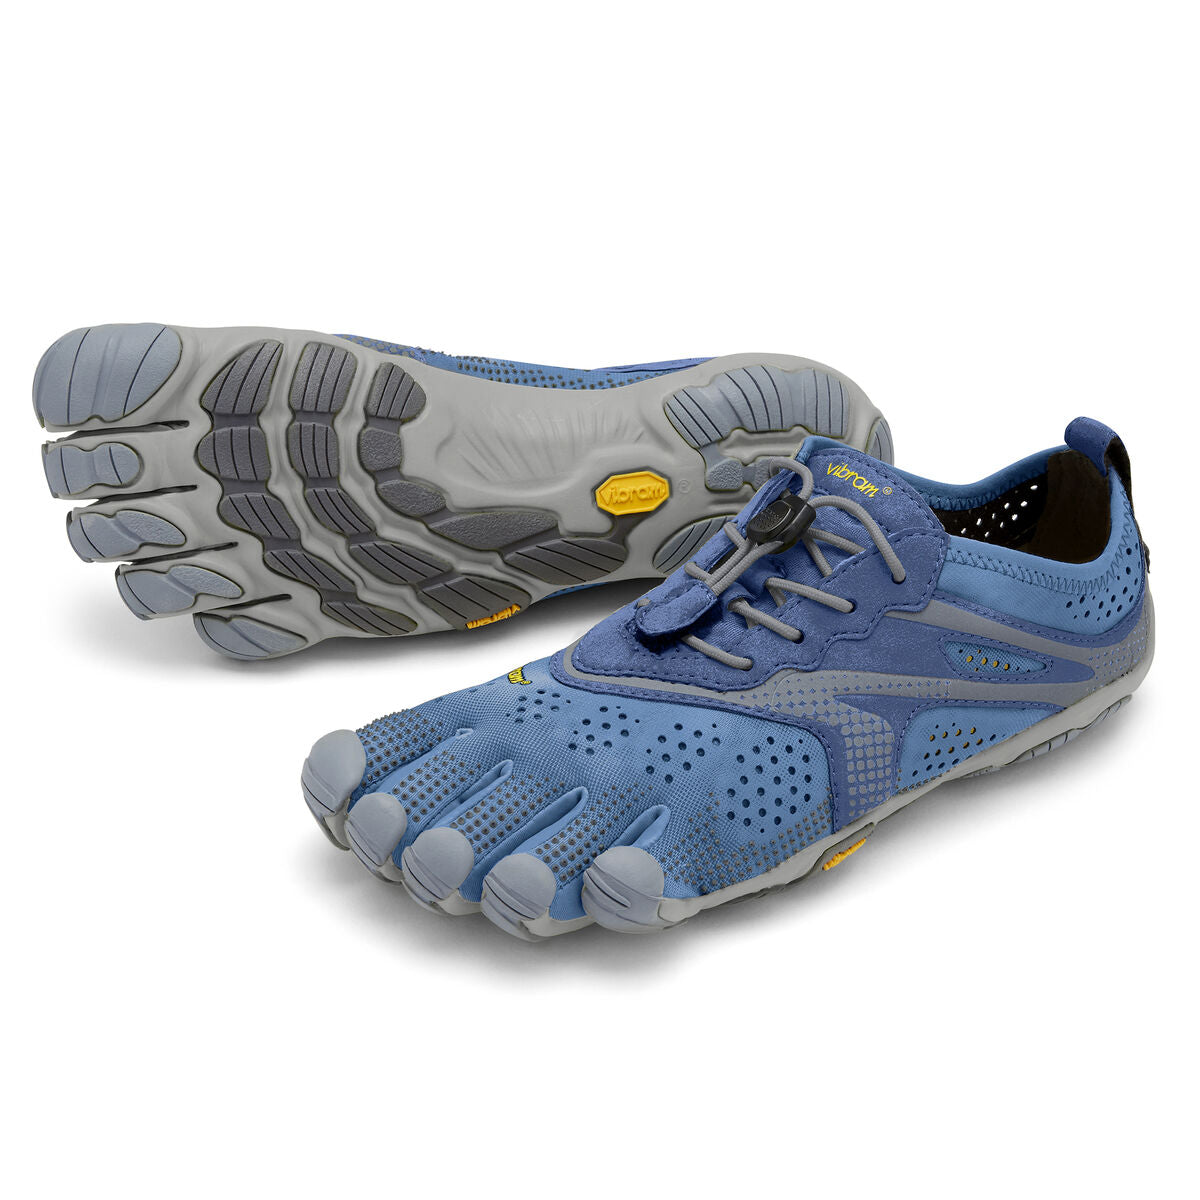 Women's Vibram Five Fingers V-Run Running Shoe in Blue/Blue from the front